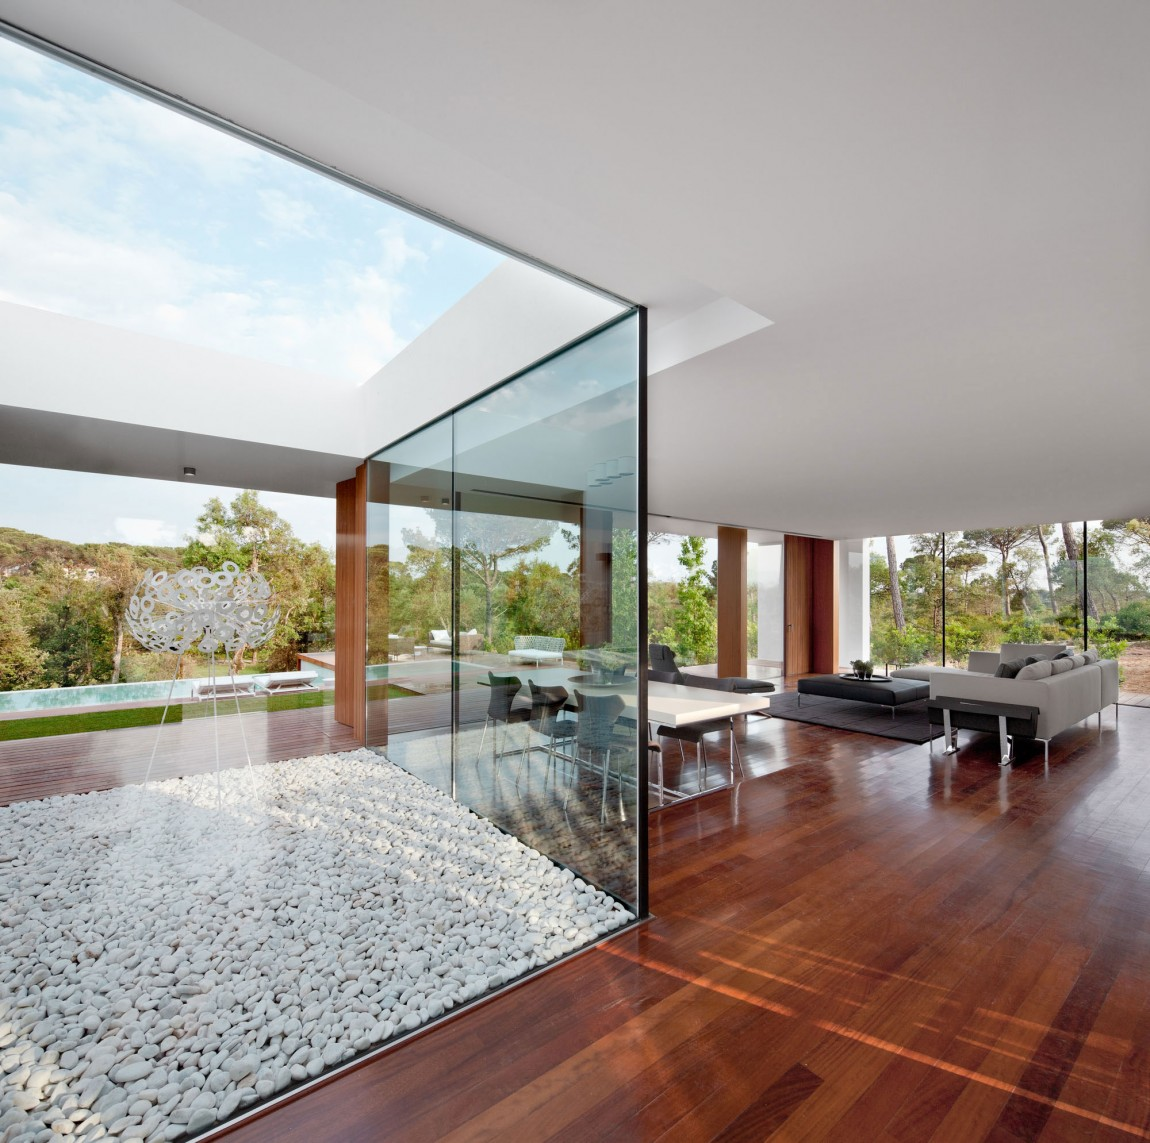 World of architecture: modern villa indigo, catalonia, spain